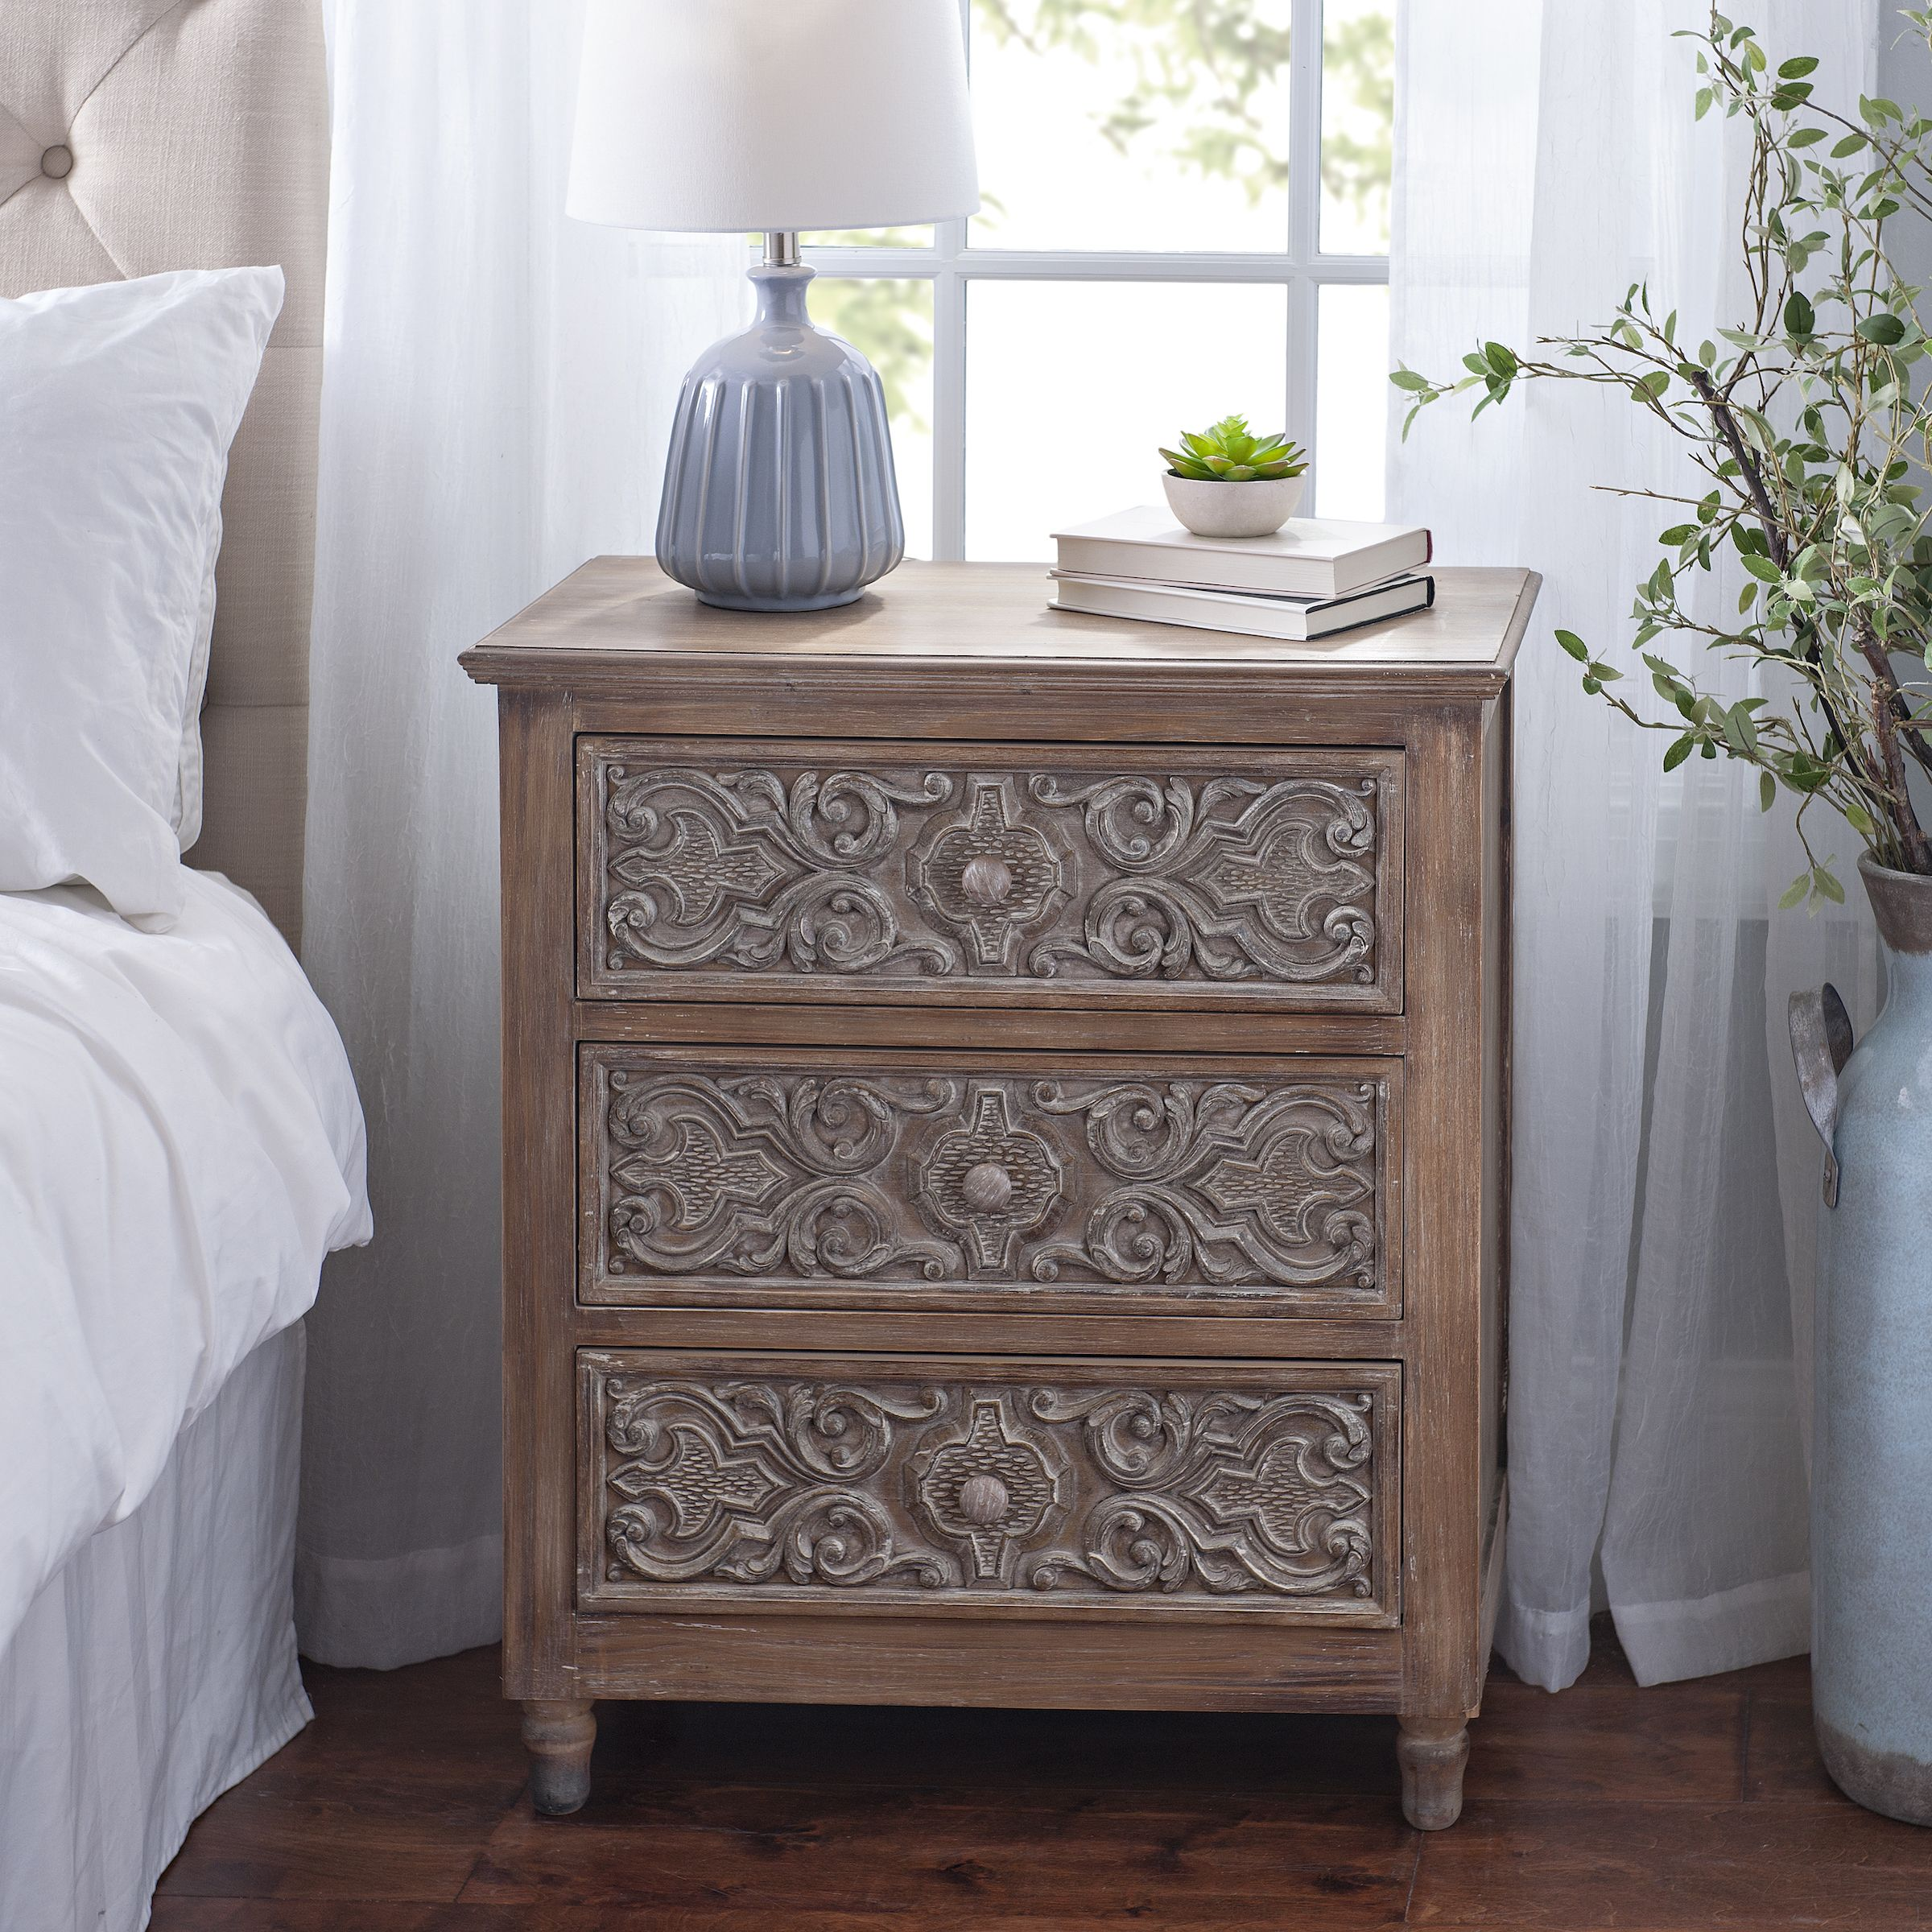 Get Antique Style With Enticing Embossing Affordable Furniture Bedroom Furnishings Furniture